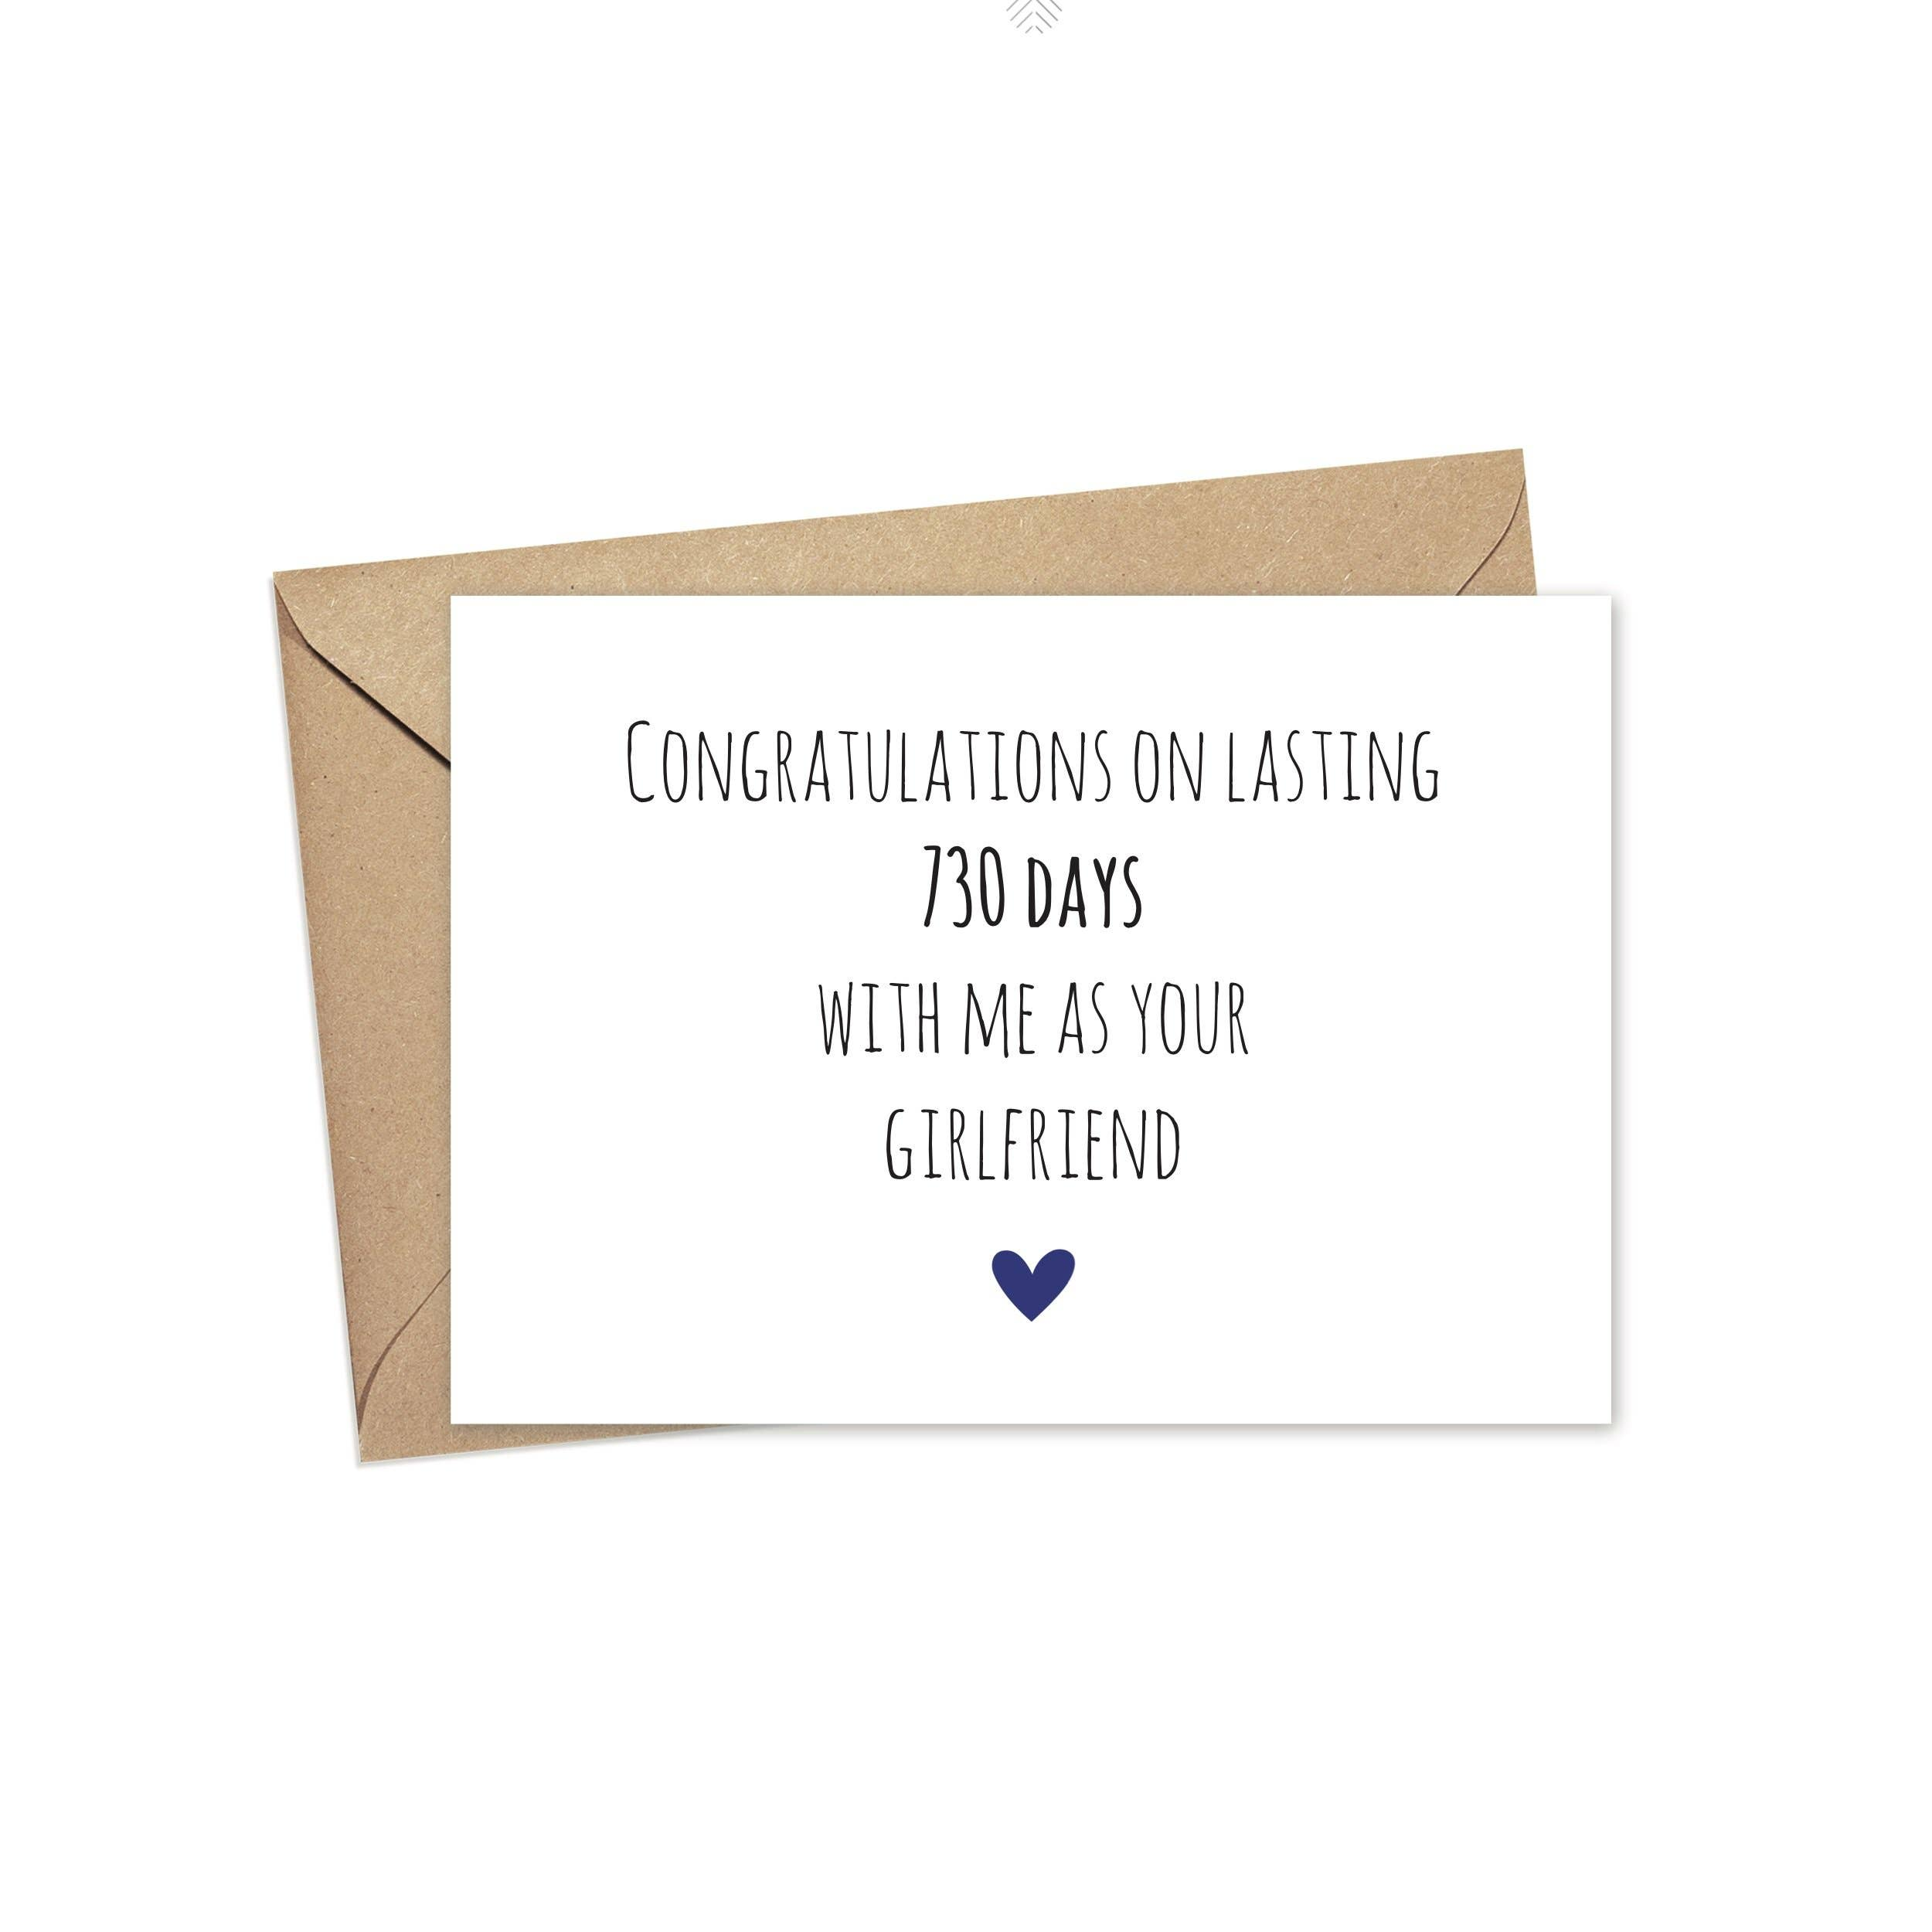 Congratulations on Lasting 730 Days With Me | A2 | Trada Marketplace